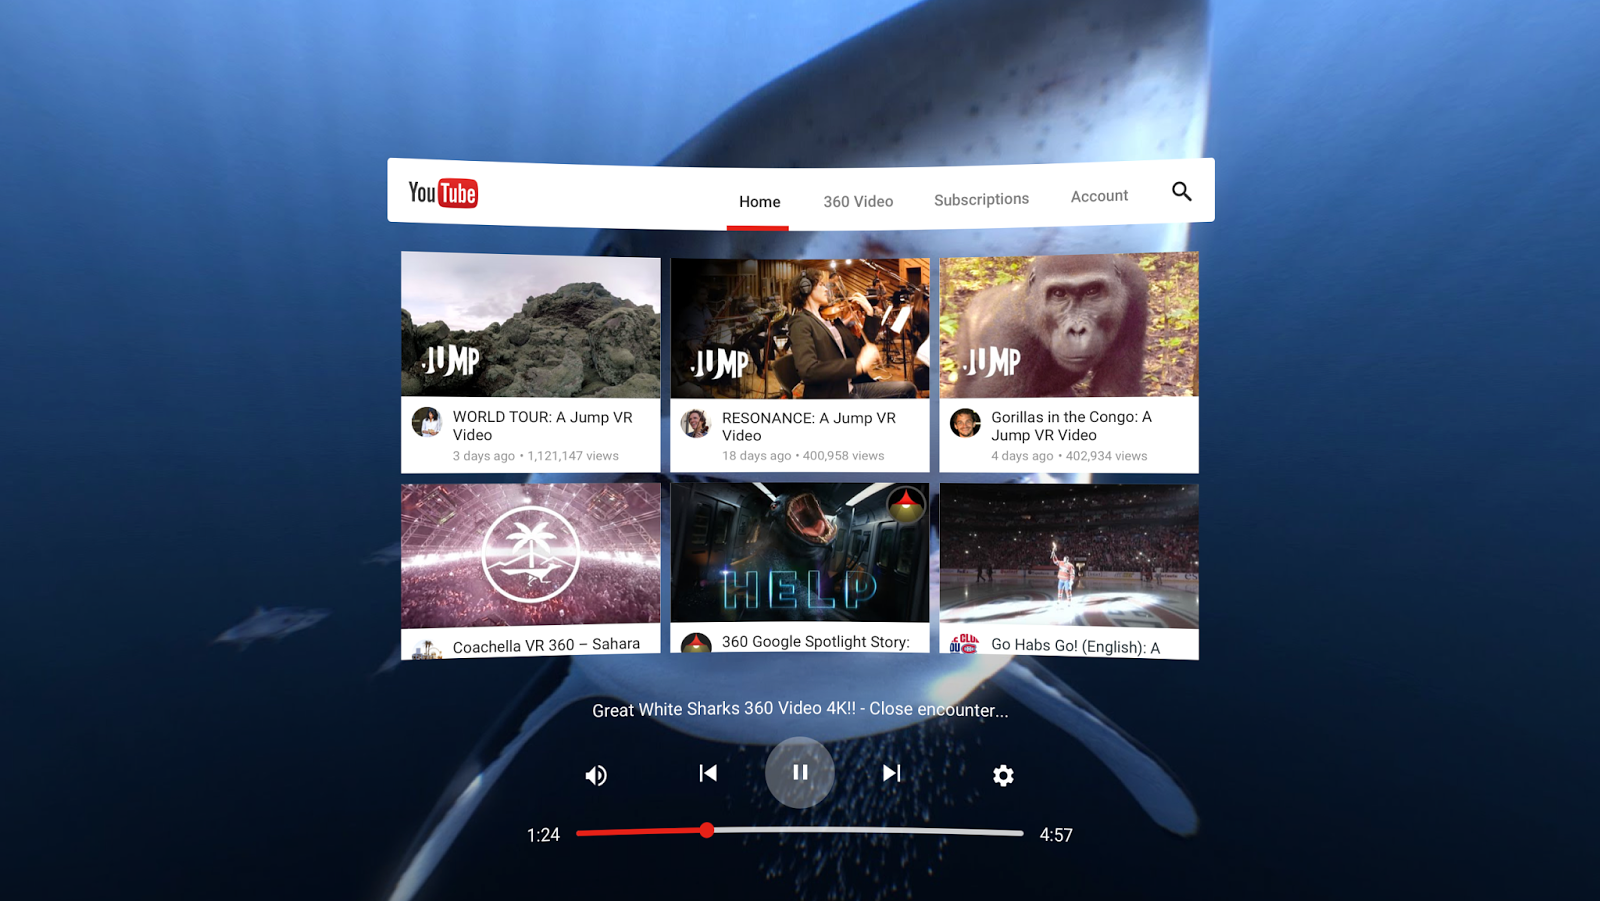 YouTube Will Make A Full VR Video App For Daydream